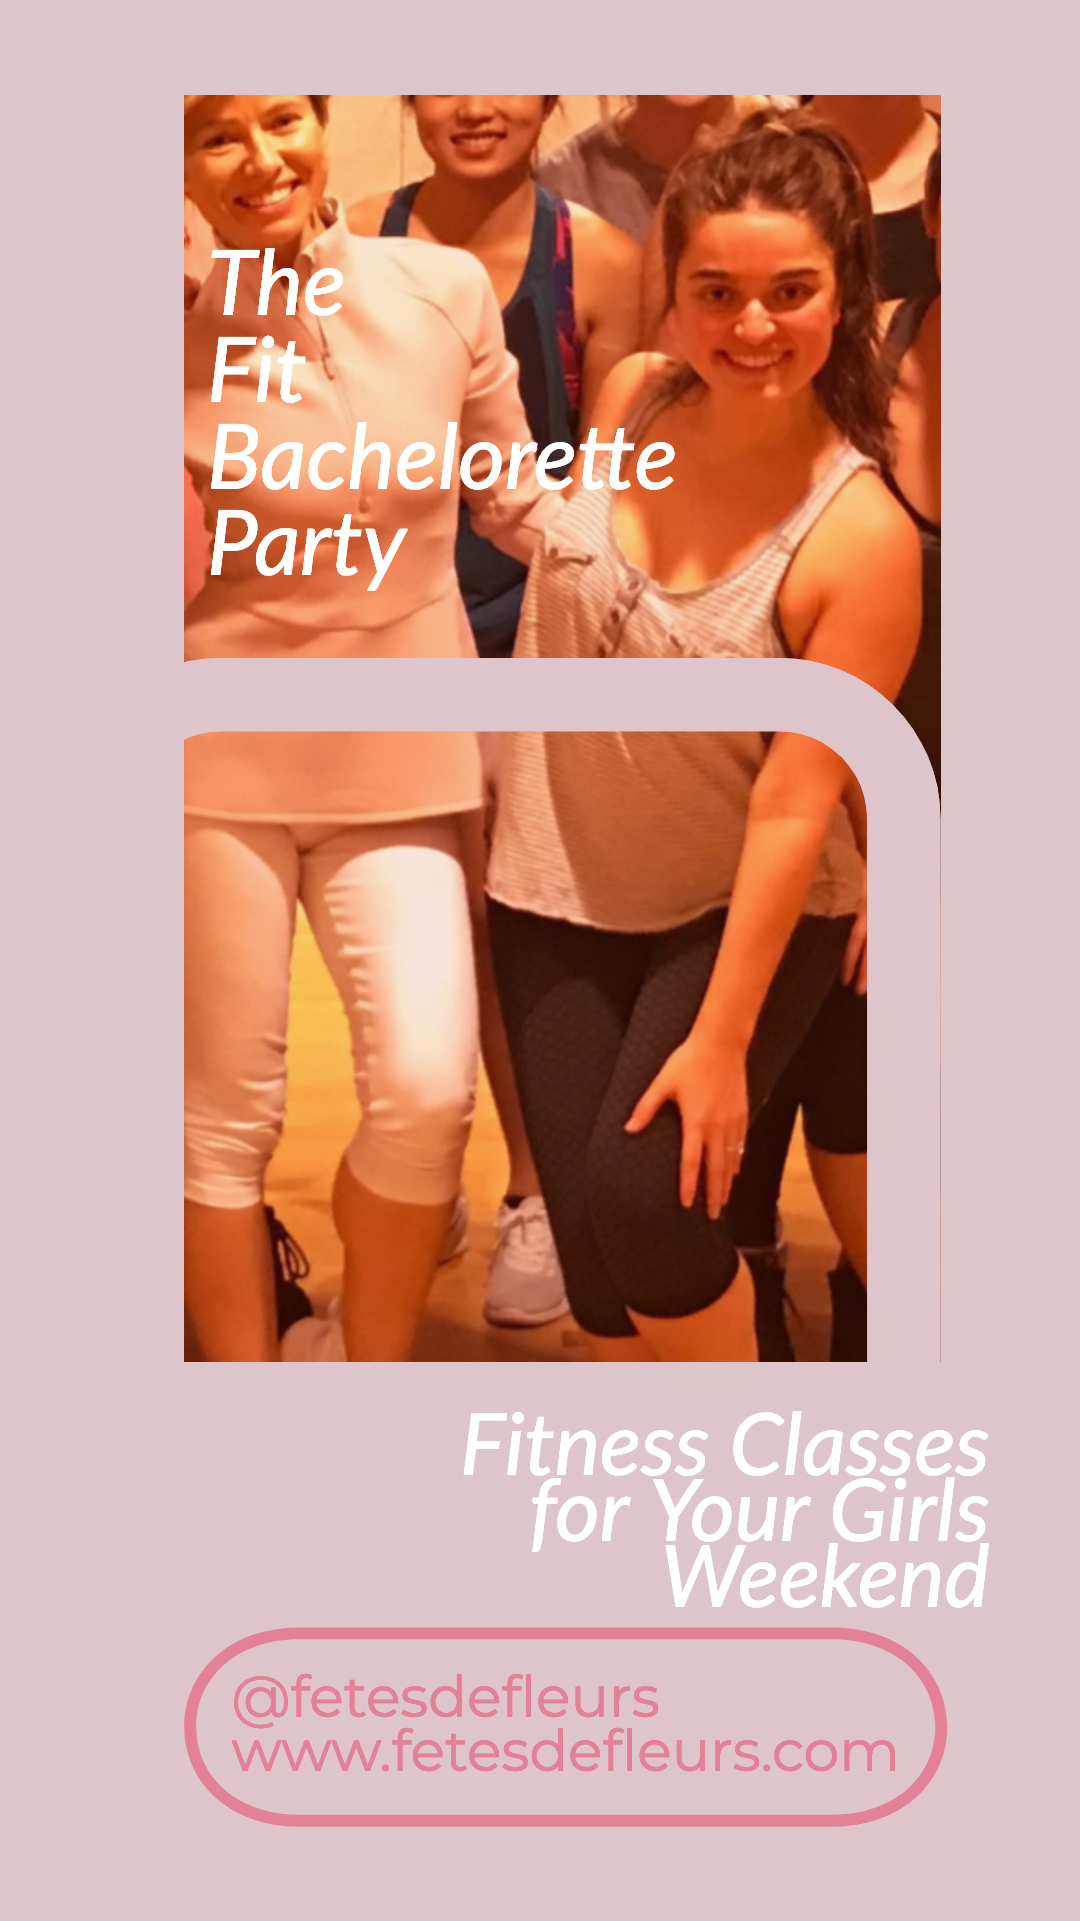 fitness classes in altanta for your bachelorette party